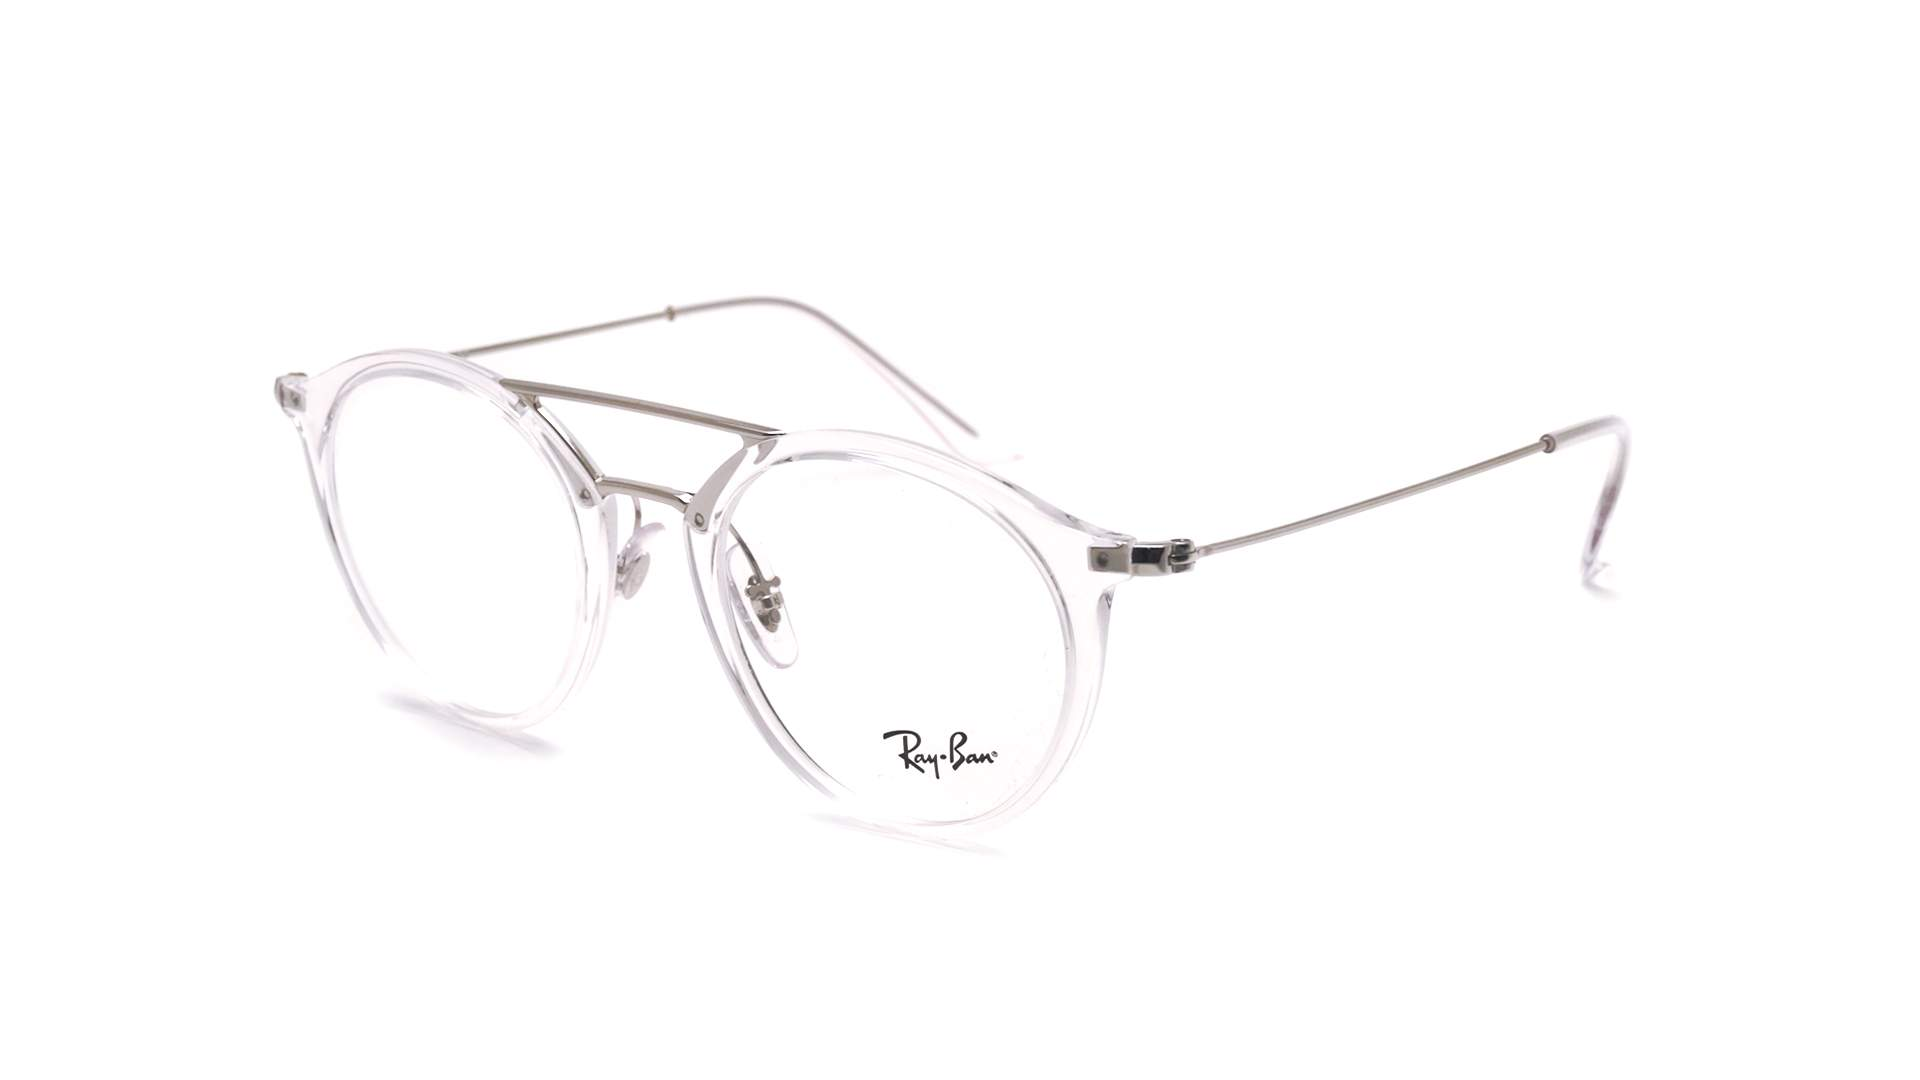 34287c169b Eyeglasses Ray-Ban RX7097 RB7097 2001 49-21 Clear Medium